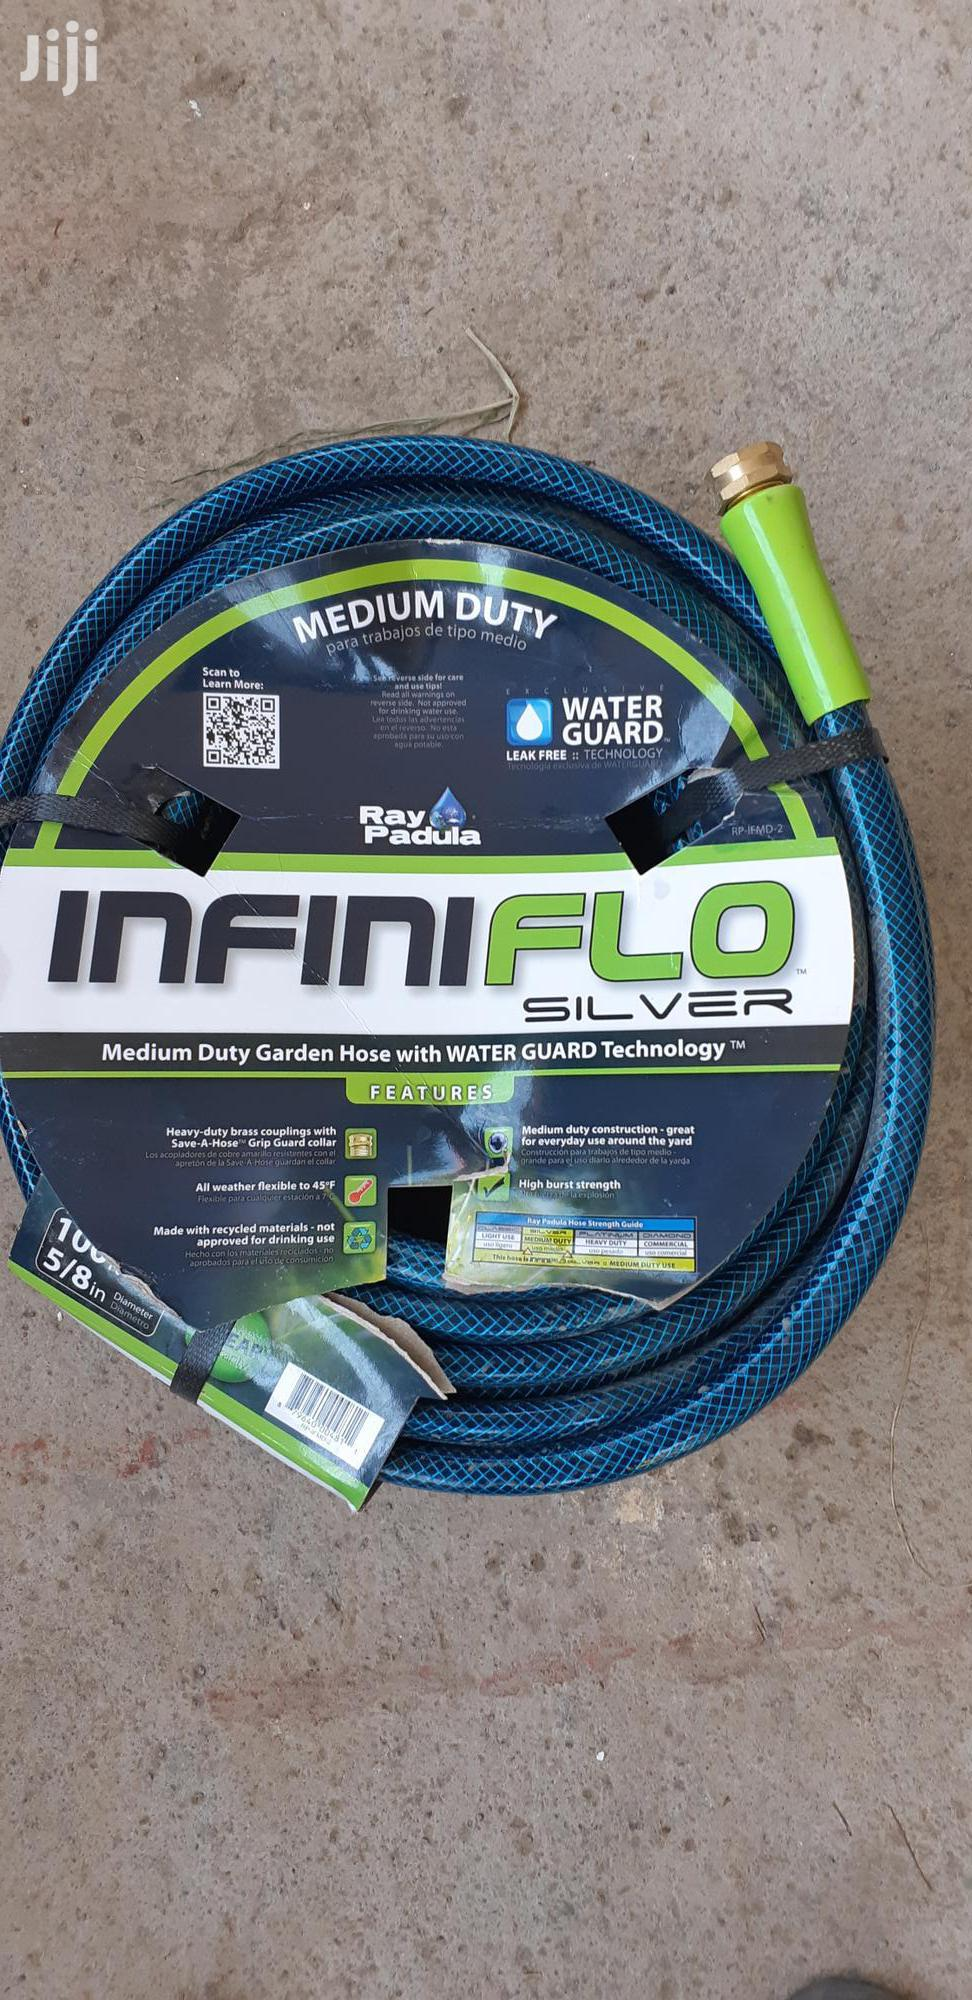 Archive: Medium Duty Size Hose With Water Guard Technology.